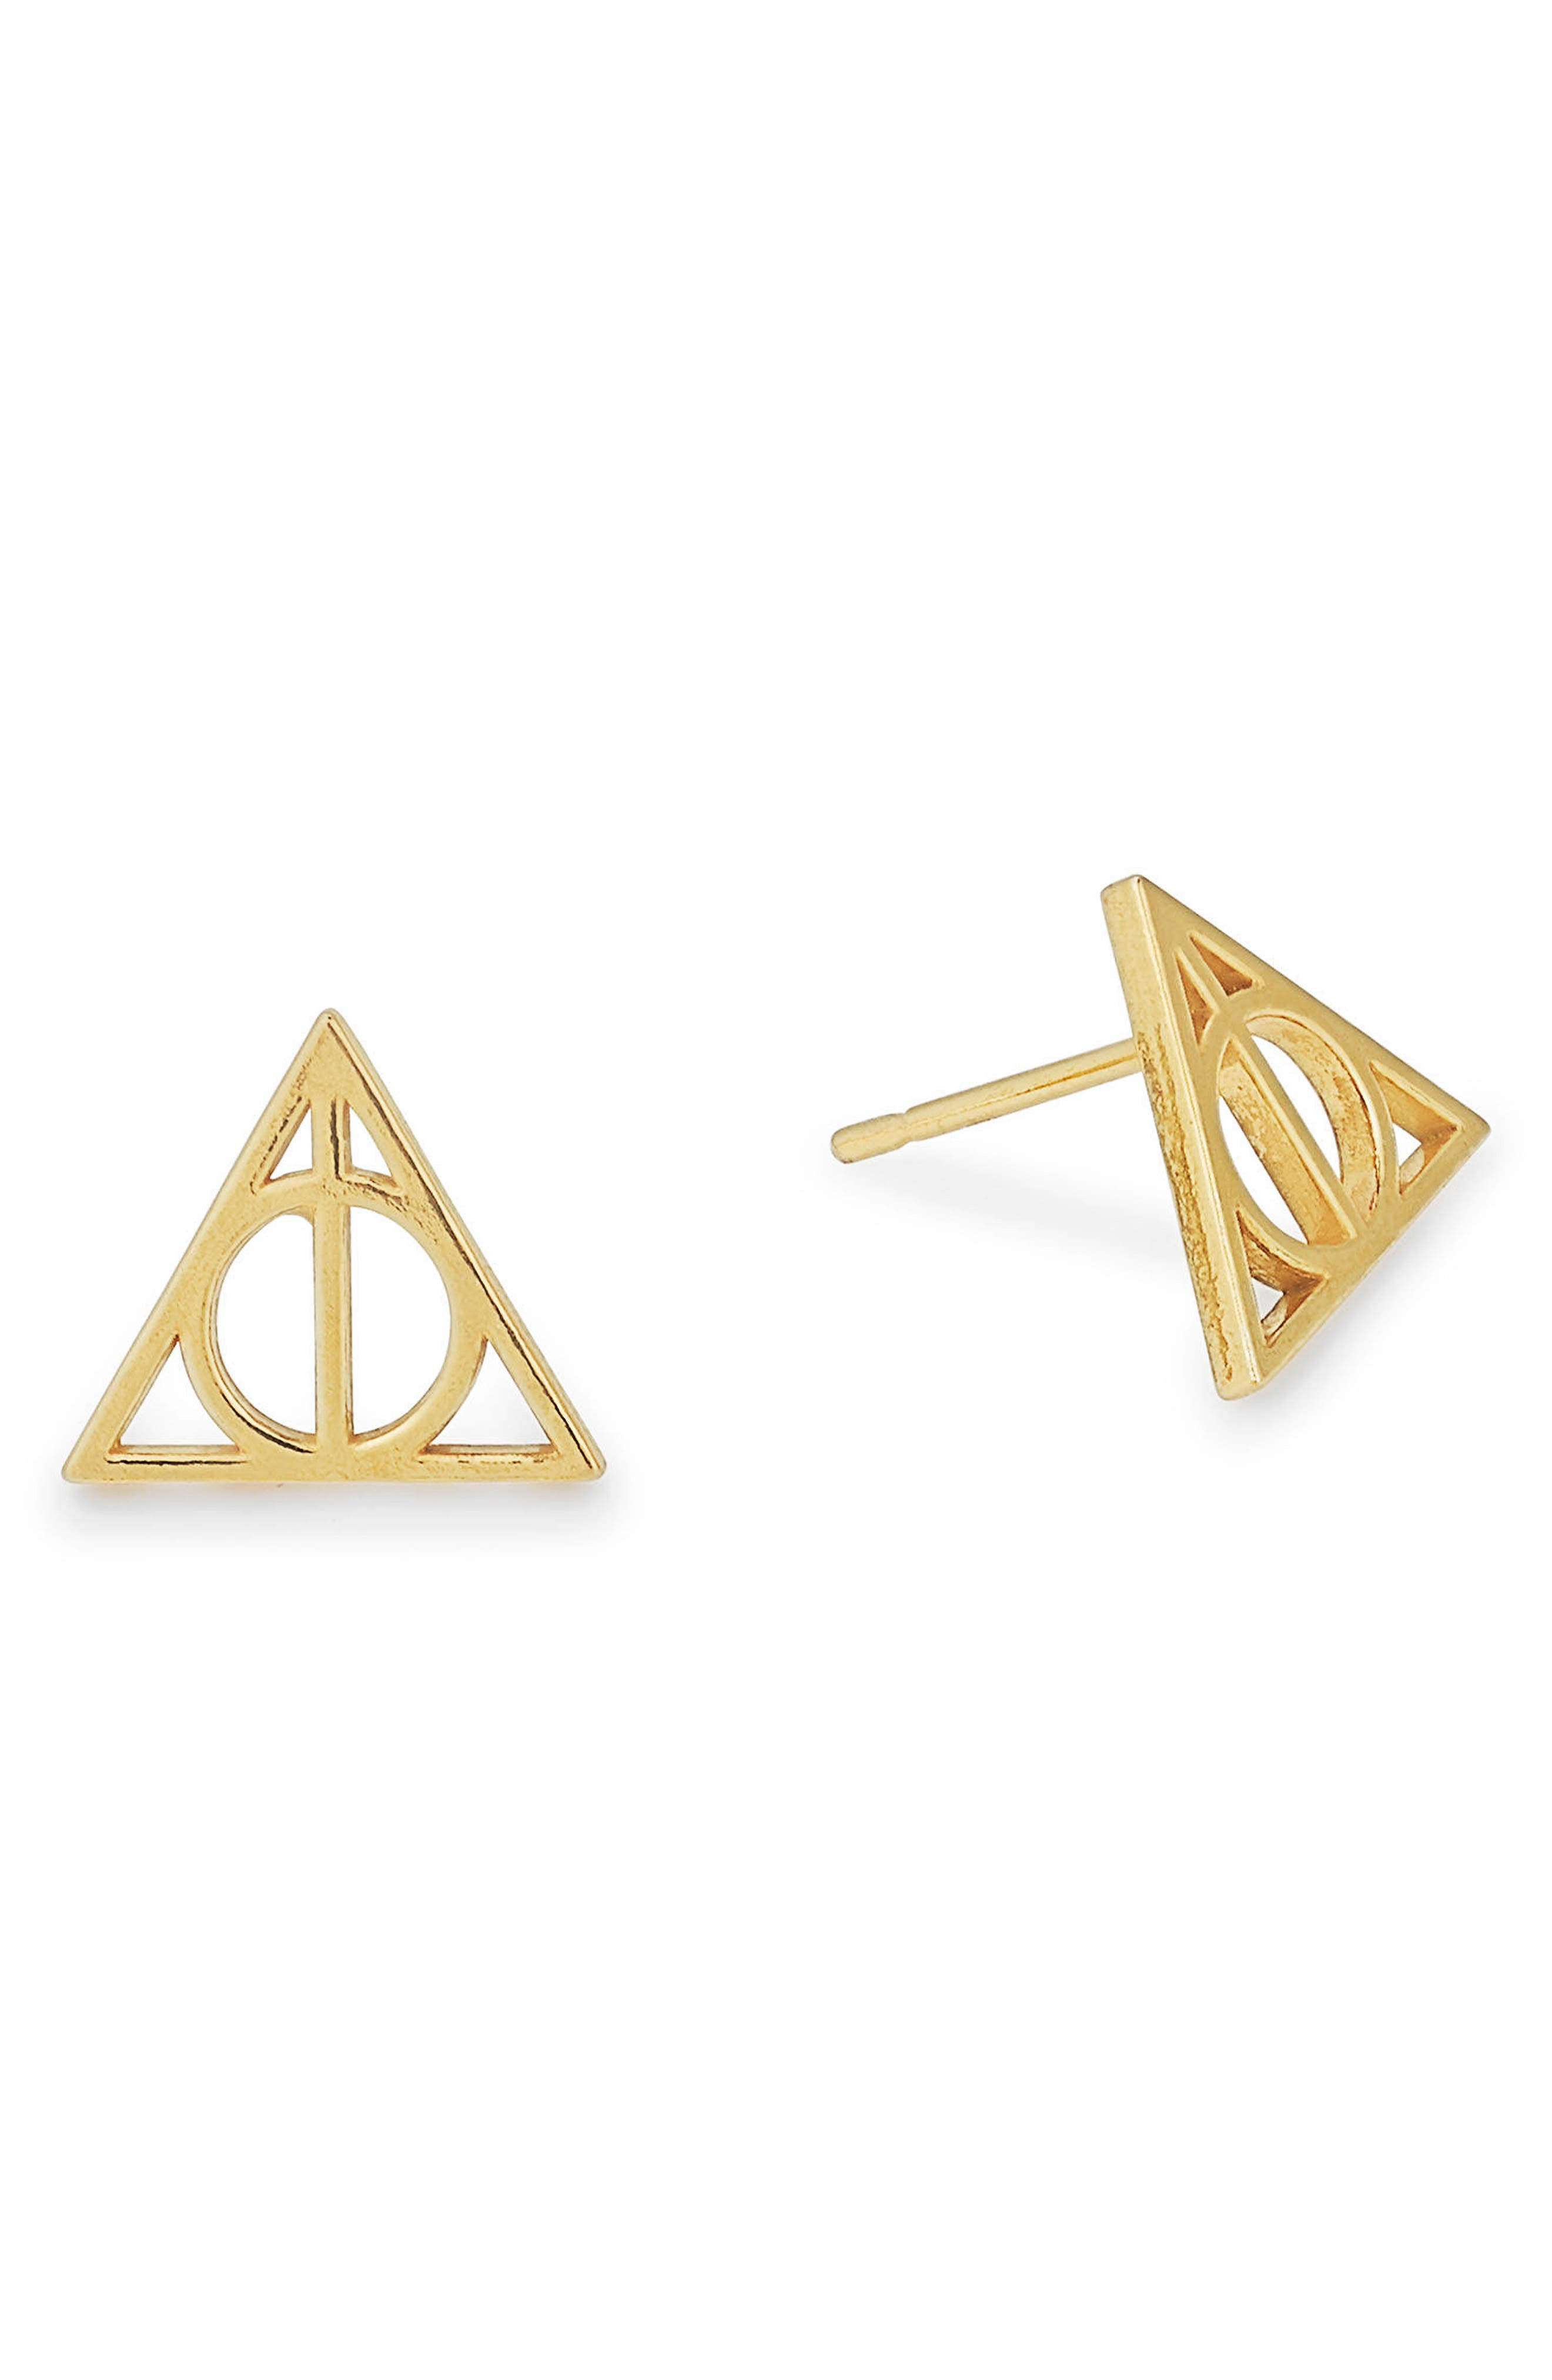 Harry Potter<sup>™</sup> Deathly Hallows<sup>™</sup> Earrings,                         Main,                         color, Gold